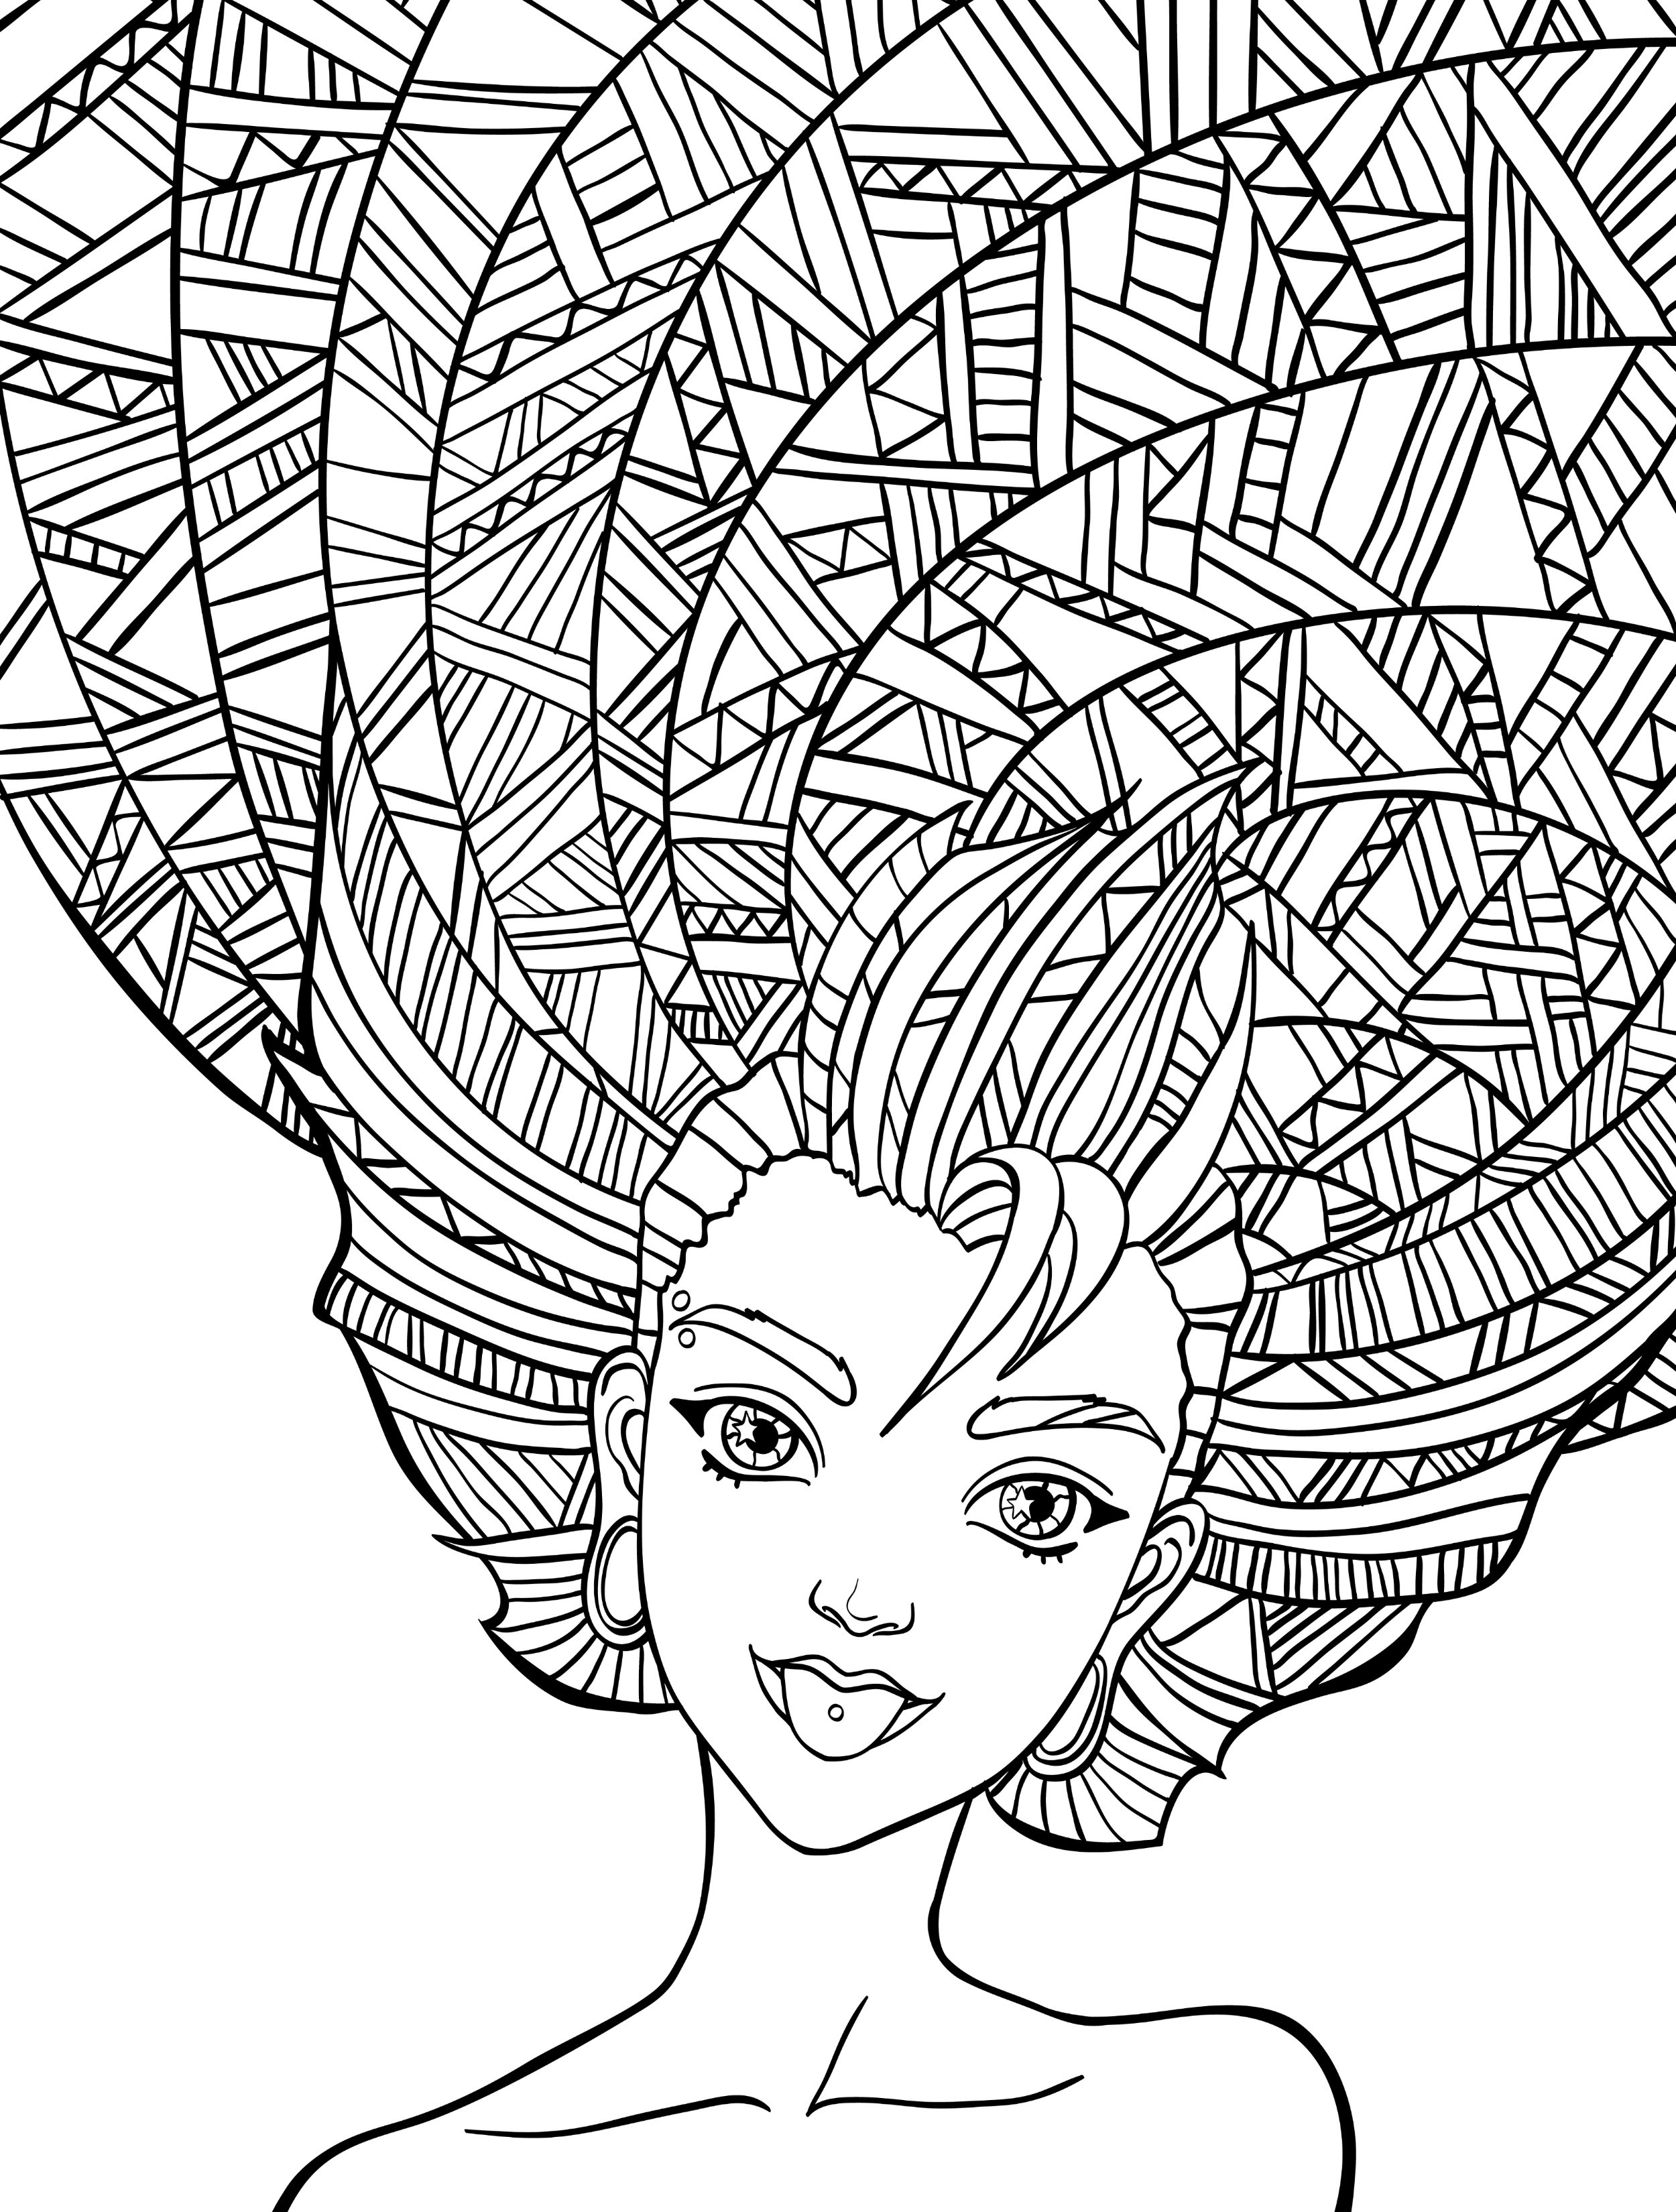 People Coloring Pages For Girls  10 Crazy Hair Adult Coloring Pages Page 9 of 12 Nerdy